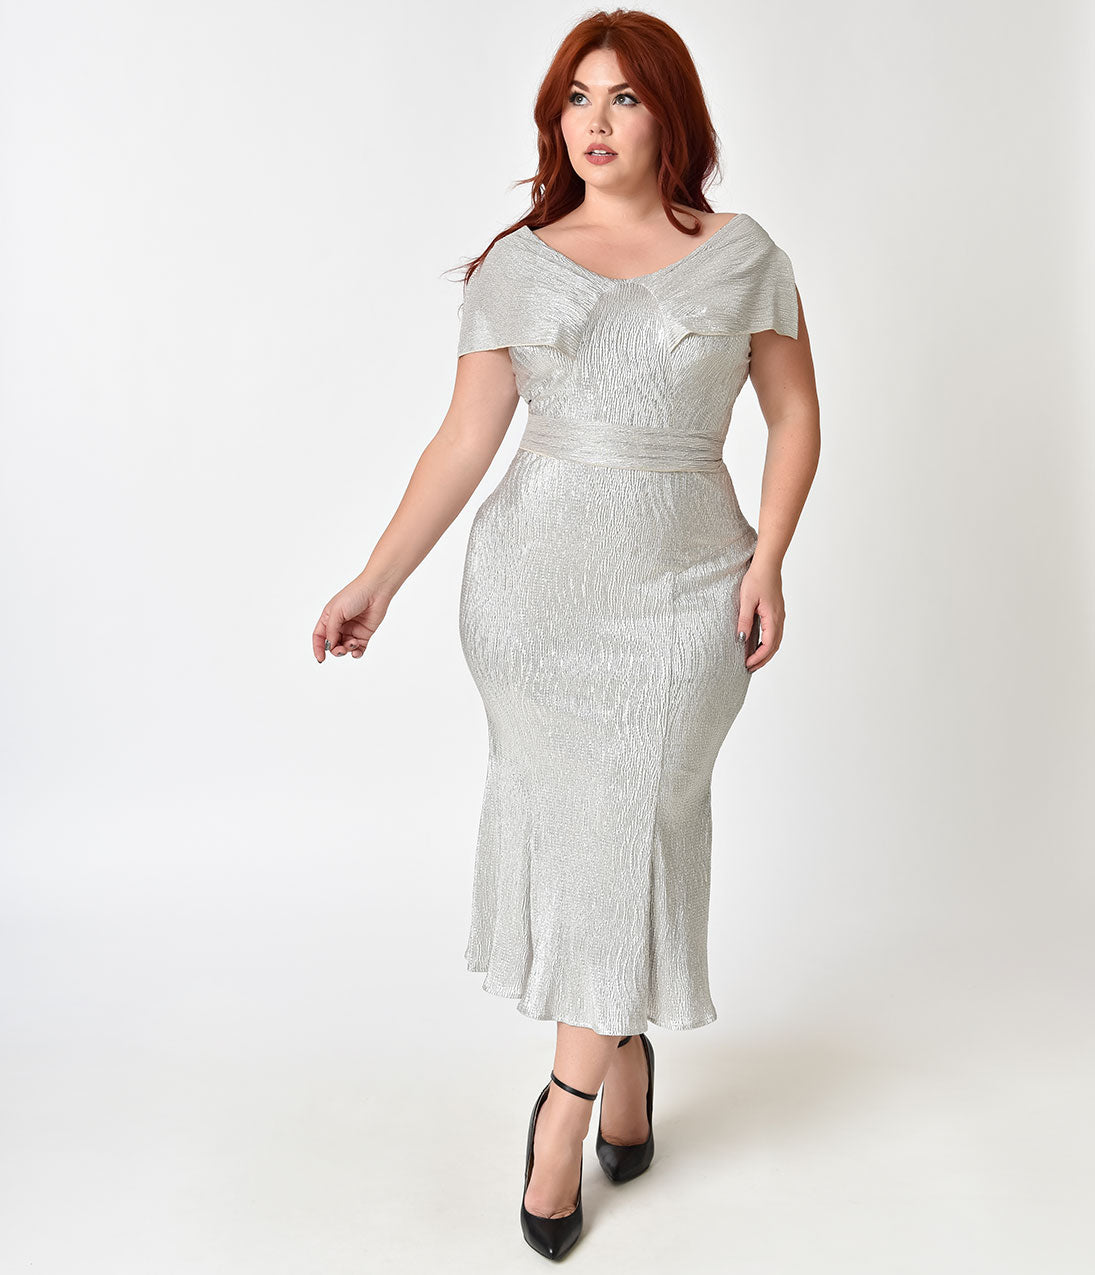 1930s Art Deco Plus Size Dresses | Tea Dresses, Party Dresses Stop Staring Plus Size Metallic Silver Screen Cap Sleeve Wiggle Dress $128.00 AT vintagedancer.com